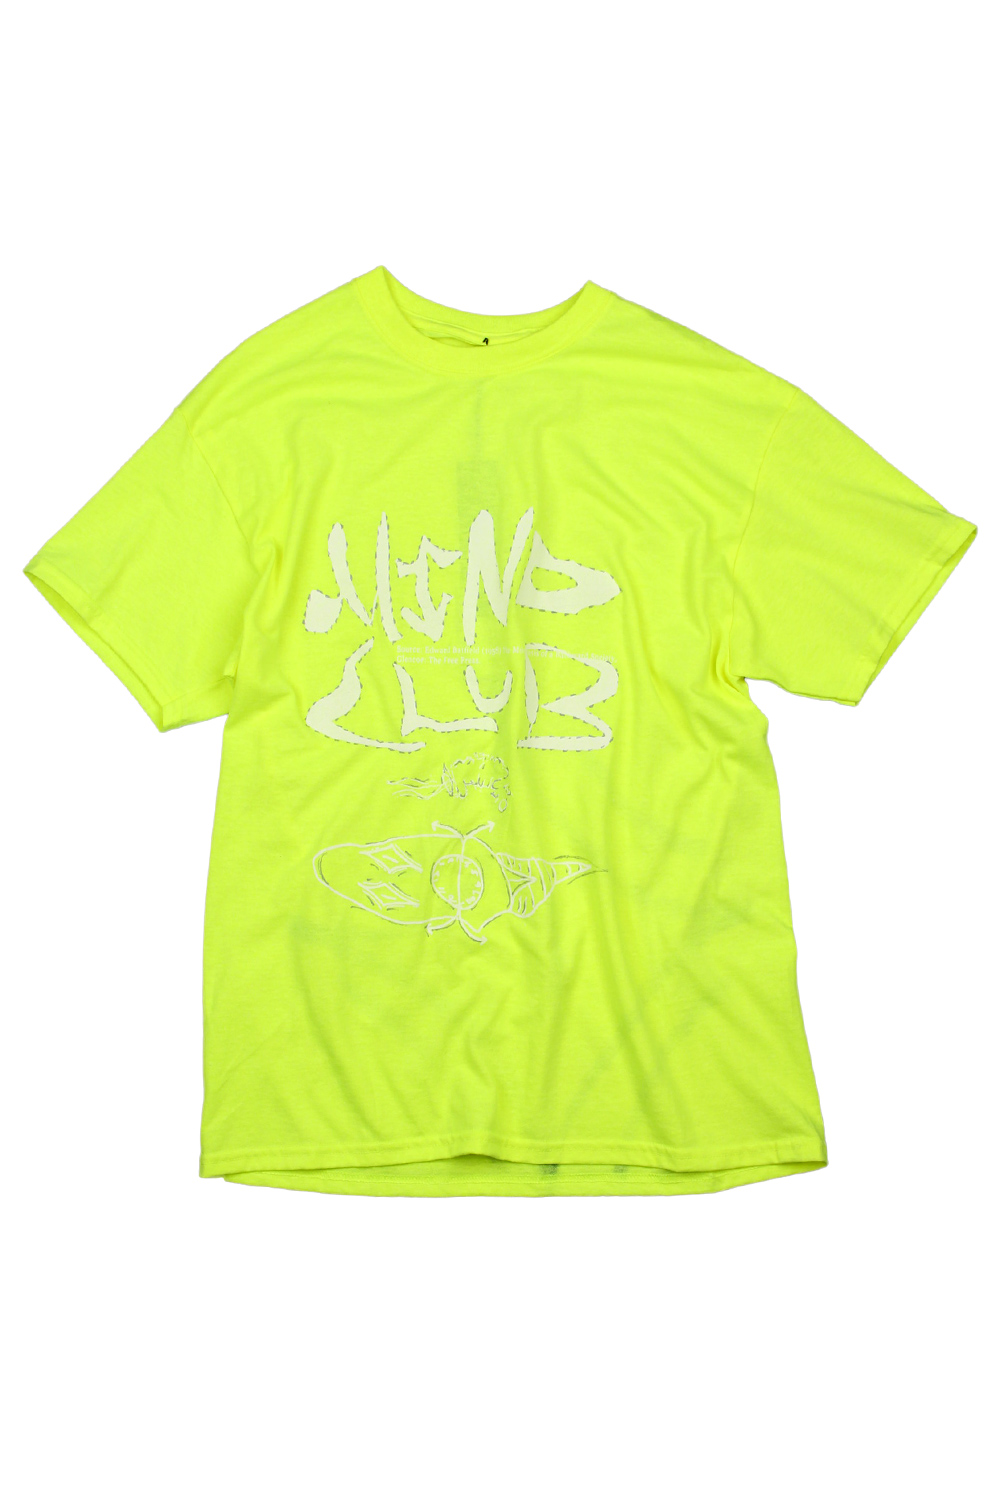 [MIND CLUB] MIND CLUB T-SHIRT white/neon